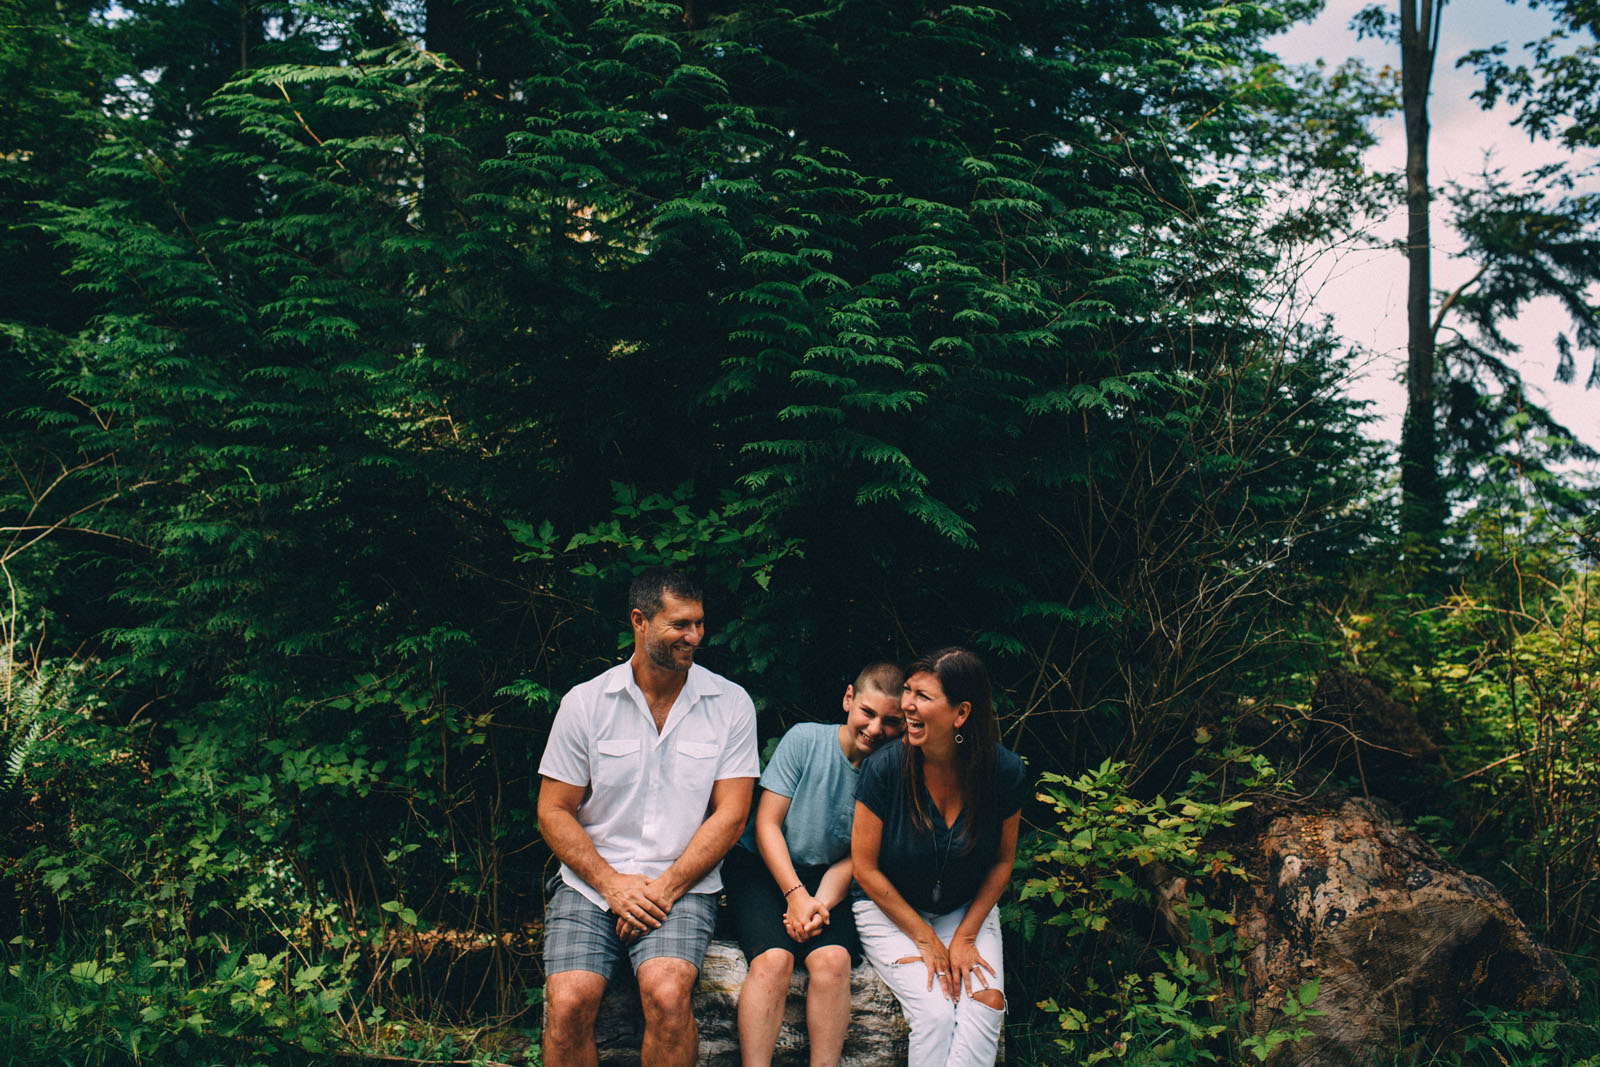 Stanley-Park-family-portrait-Vancouver-photographer-Sam-Wong-of-Visual-Cravings_13